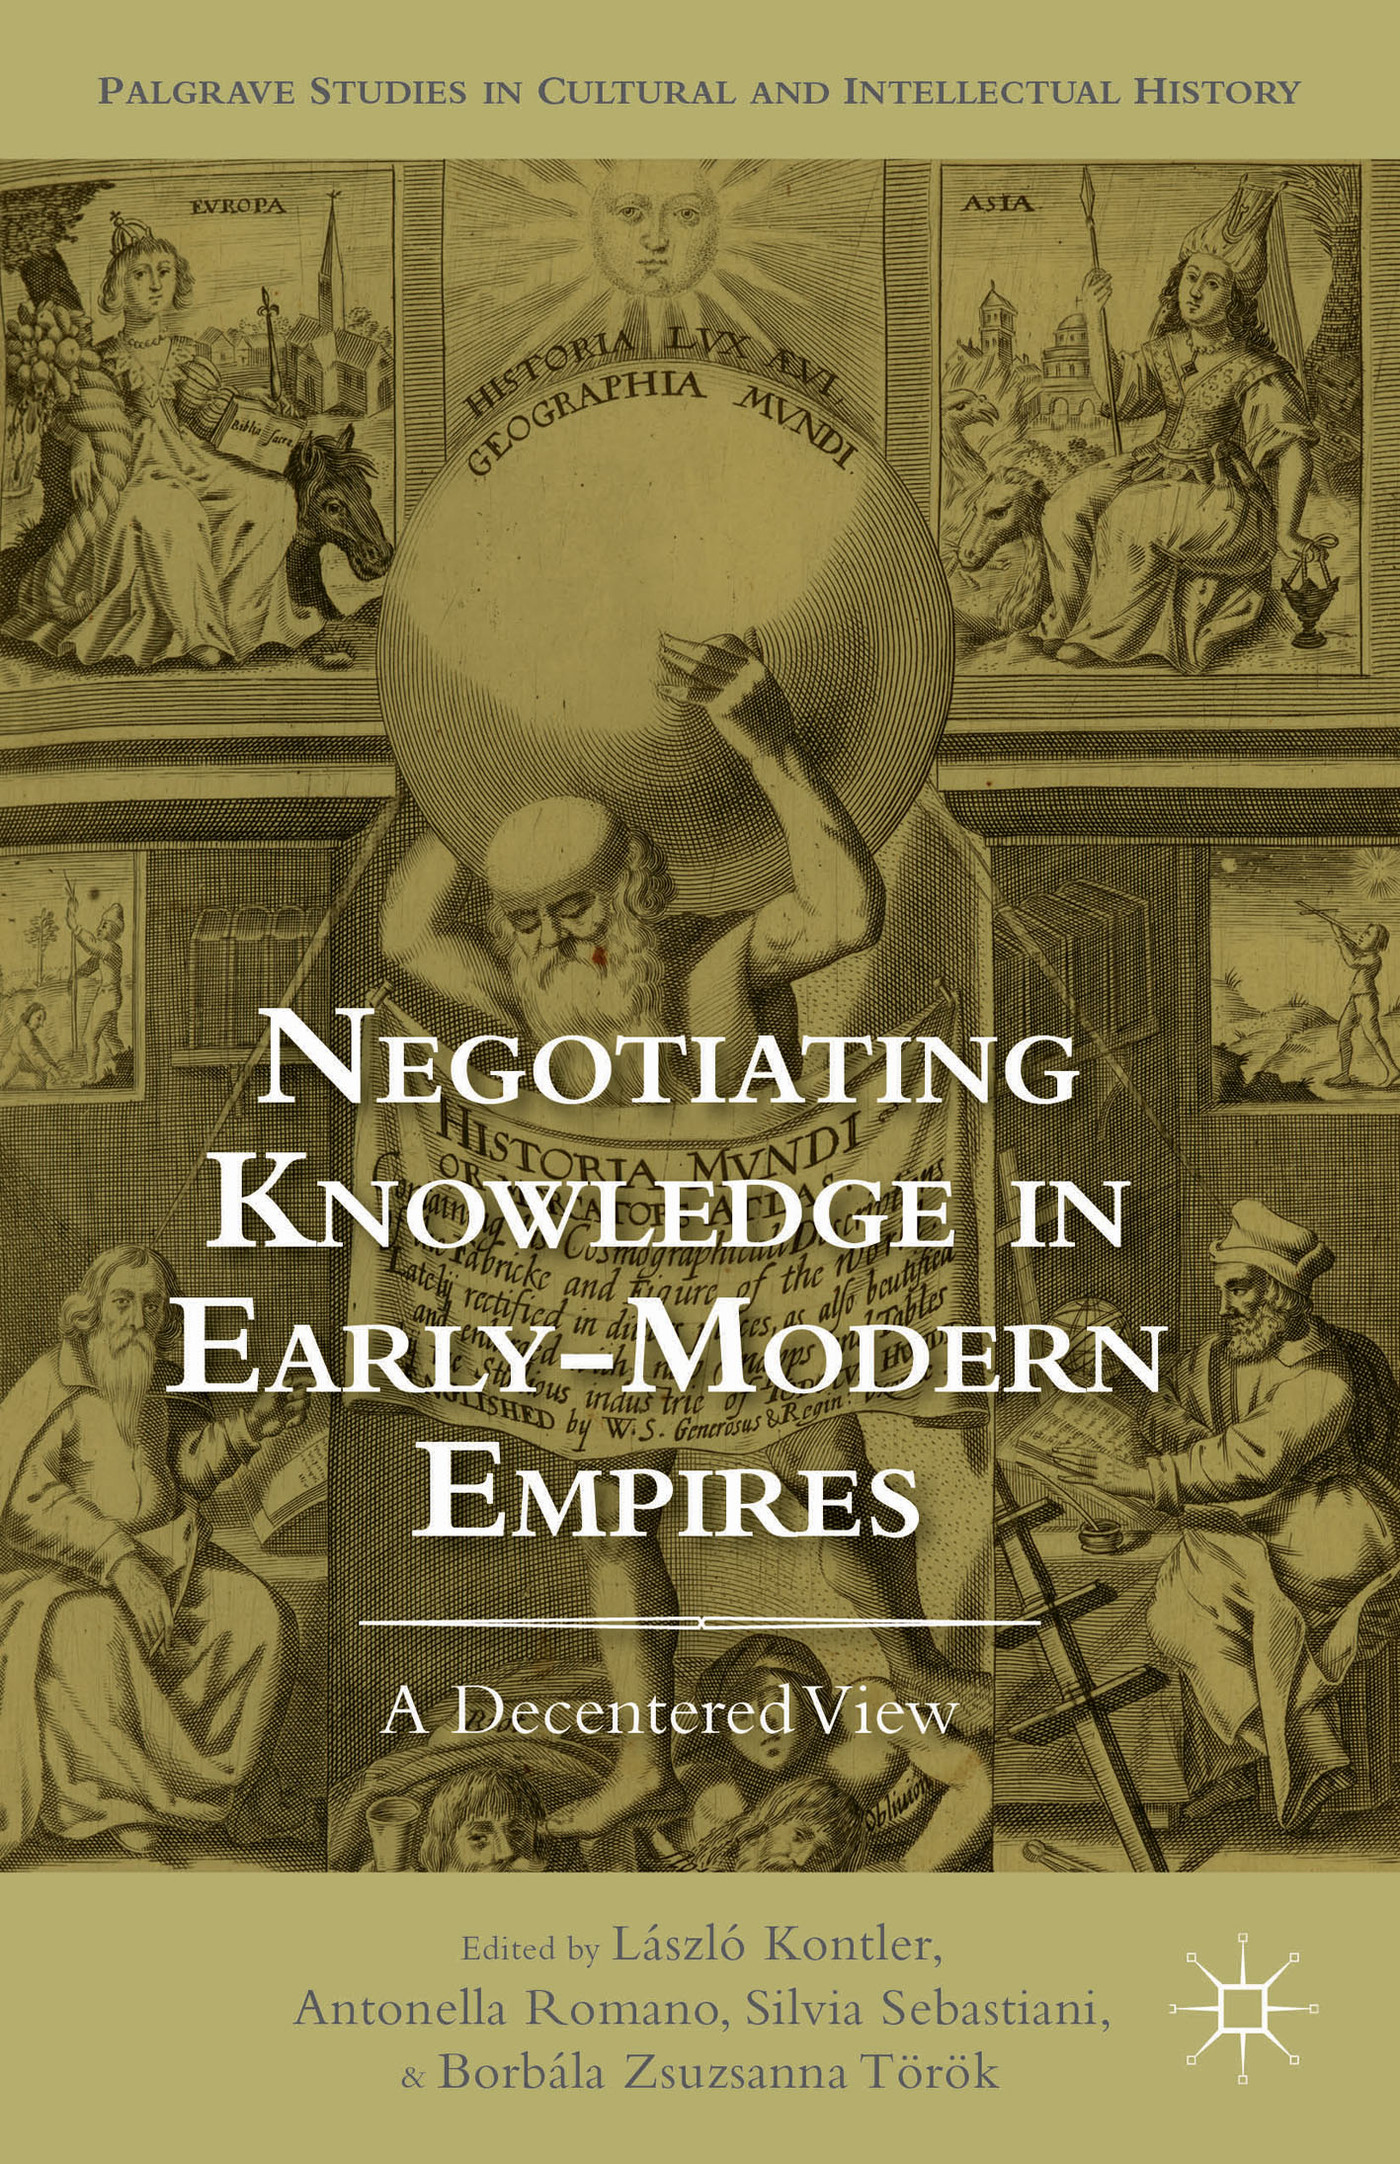 Negotiating knowledge in early modern empires : a decentered view (Book, 2014) [WorldCat.org]